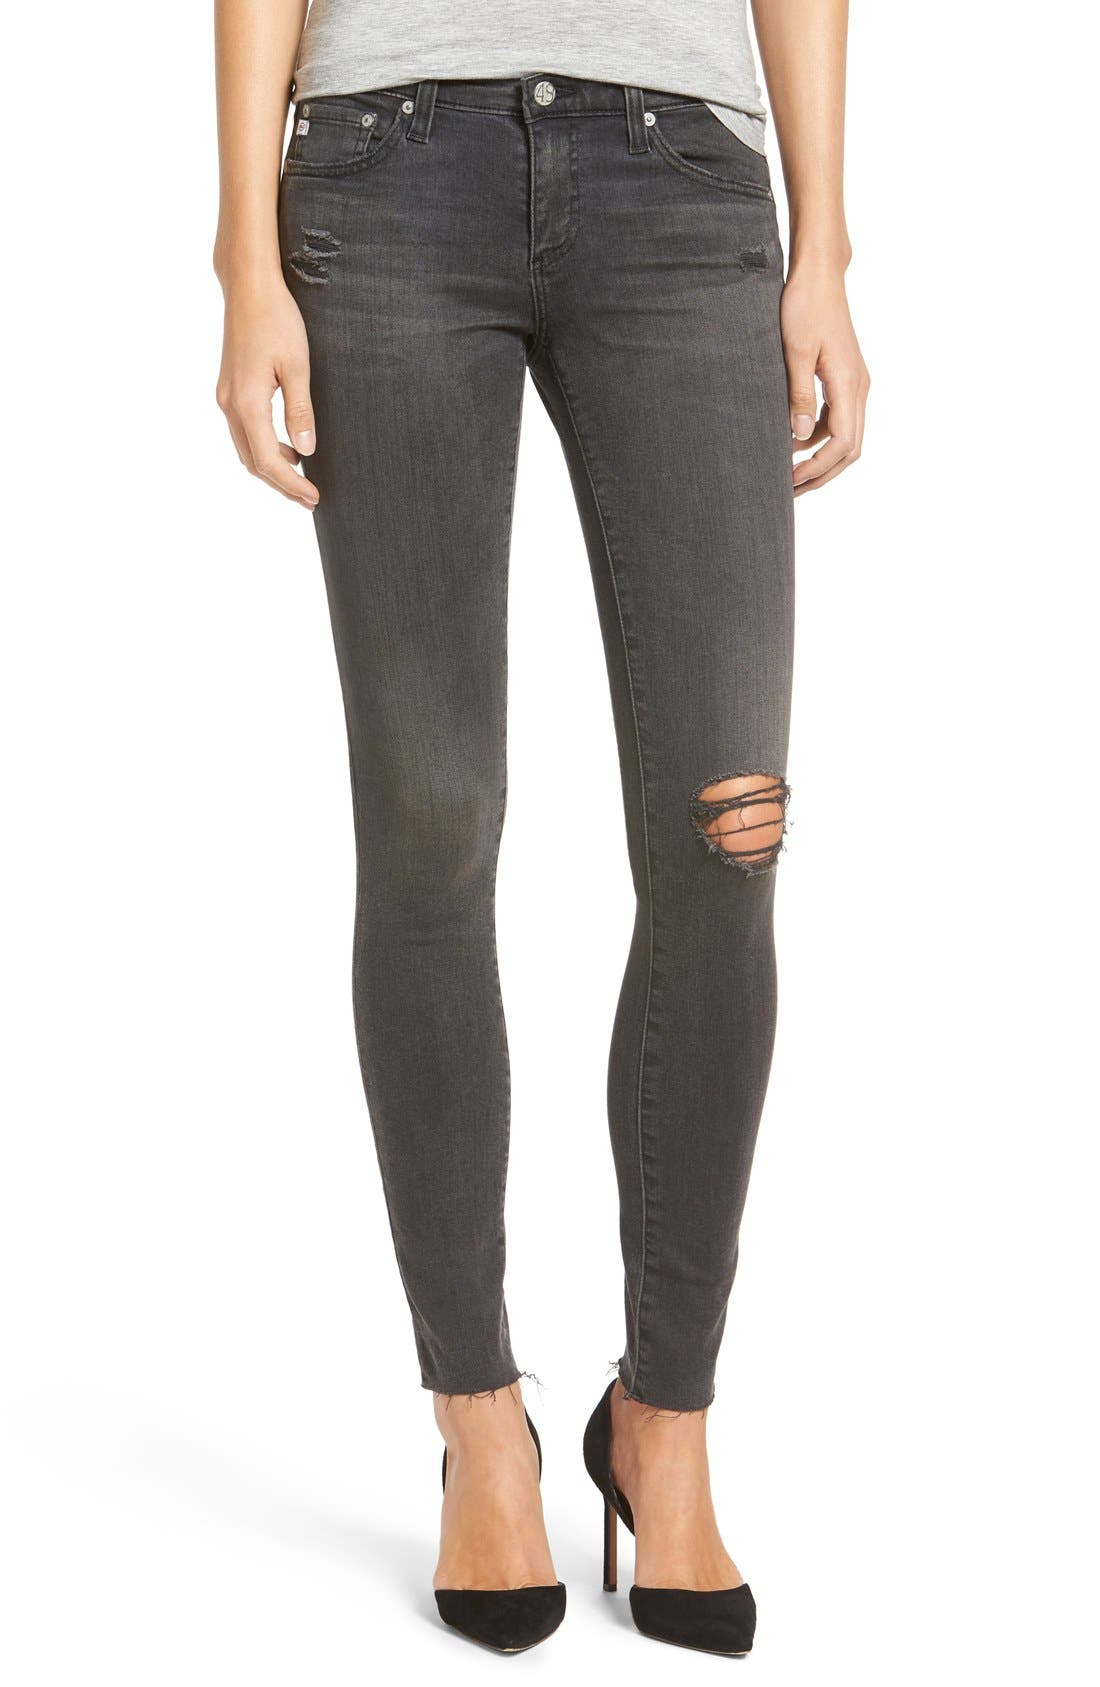 AG The Legging Ripped Super Skinny Jeans (10 Year Well Worn)